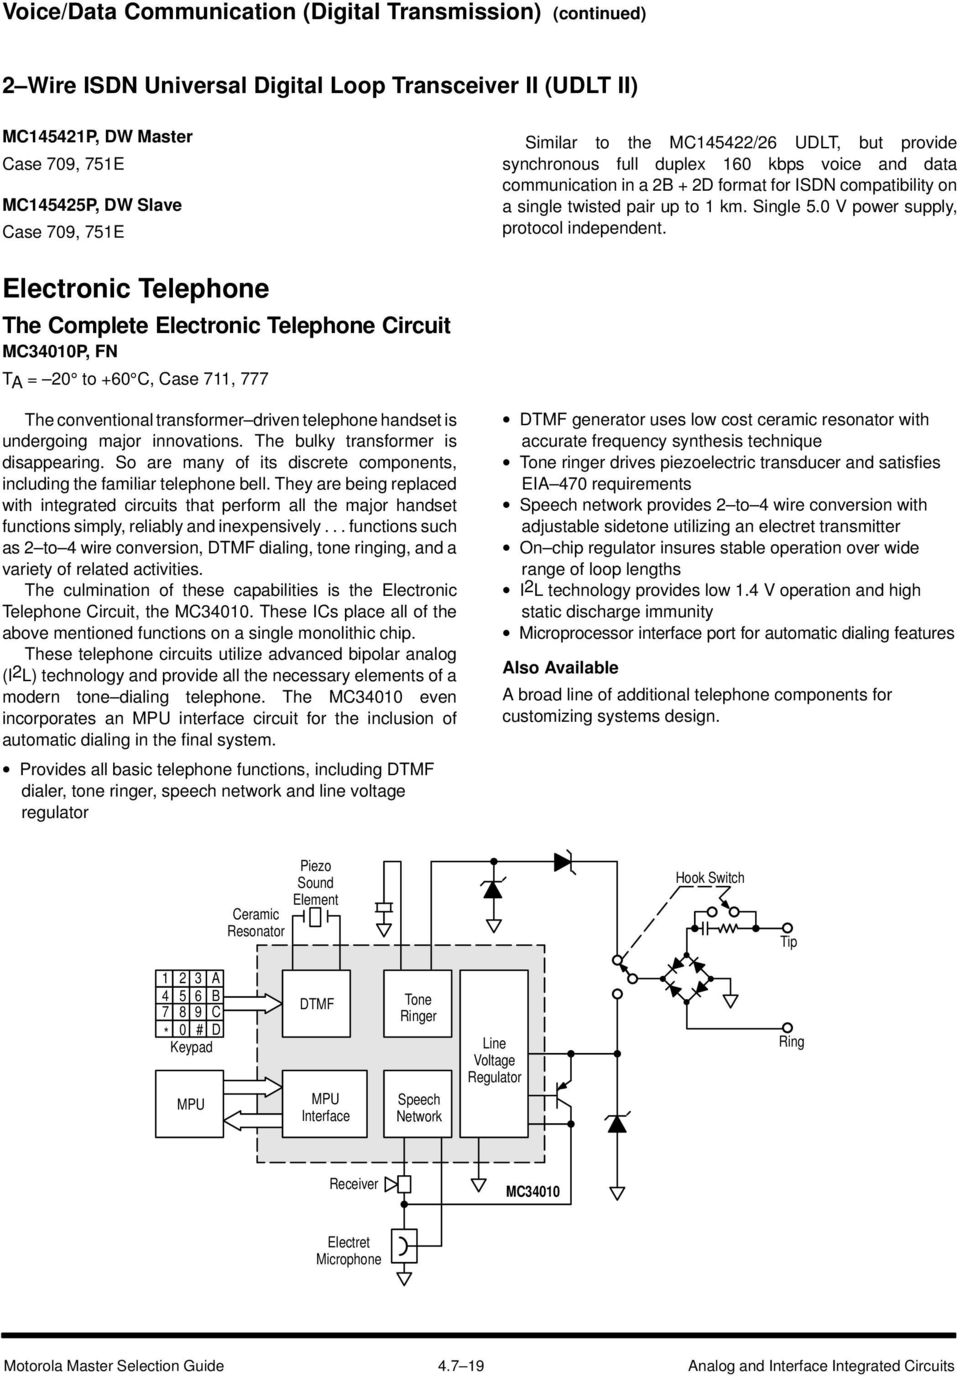 Communication Circuits Pdf Radio Remote Control Using Dtmf Receiver Transceiver 0 V Power Supply Protocol Independent